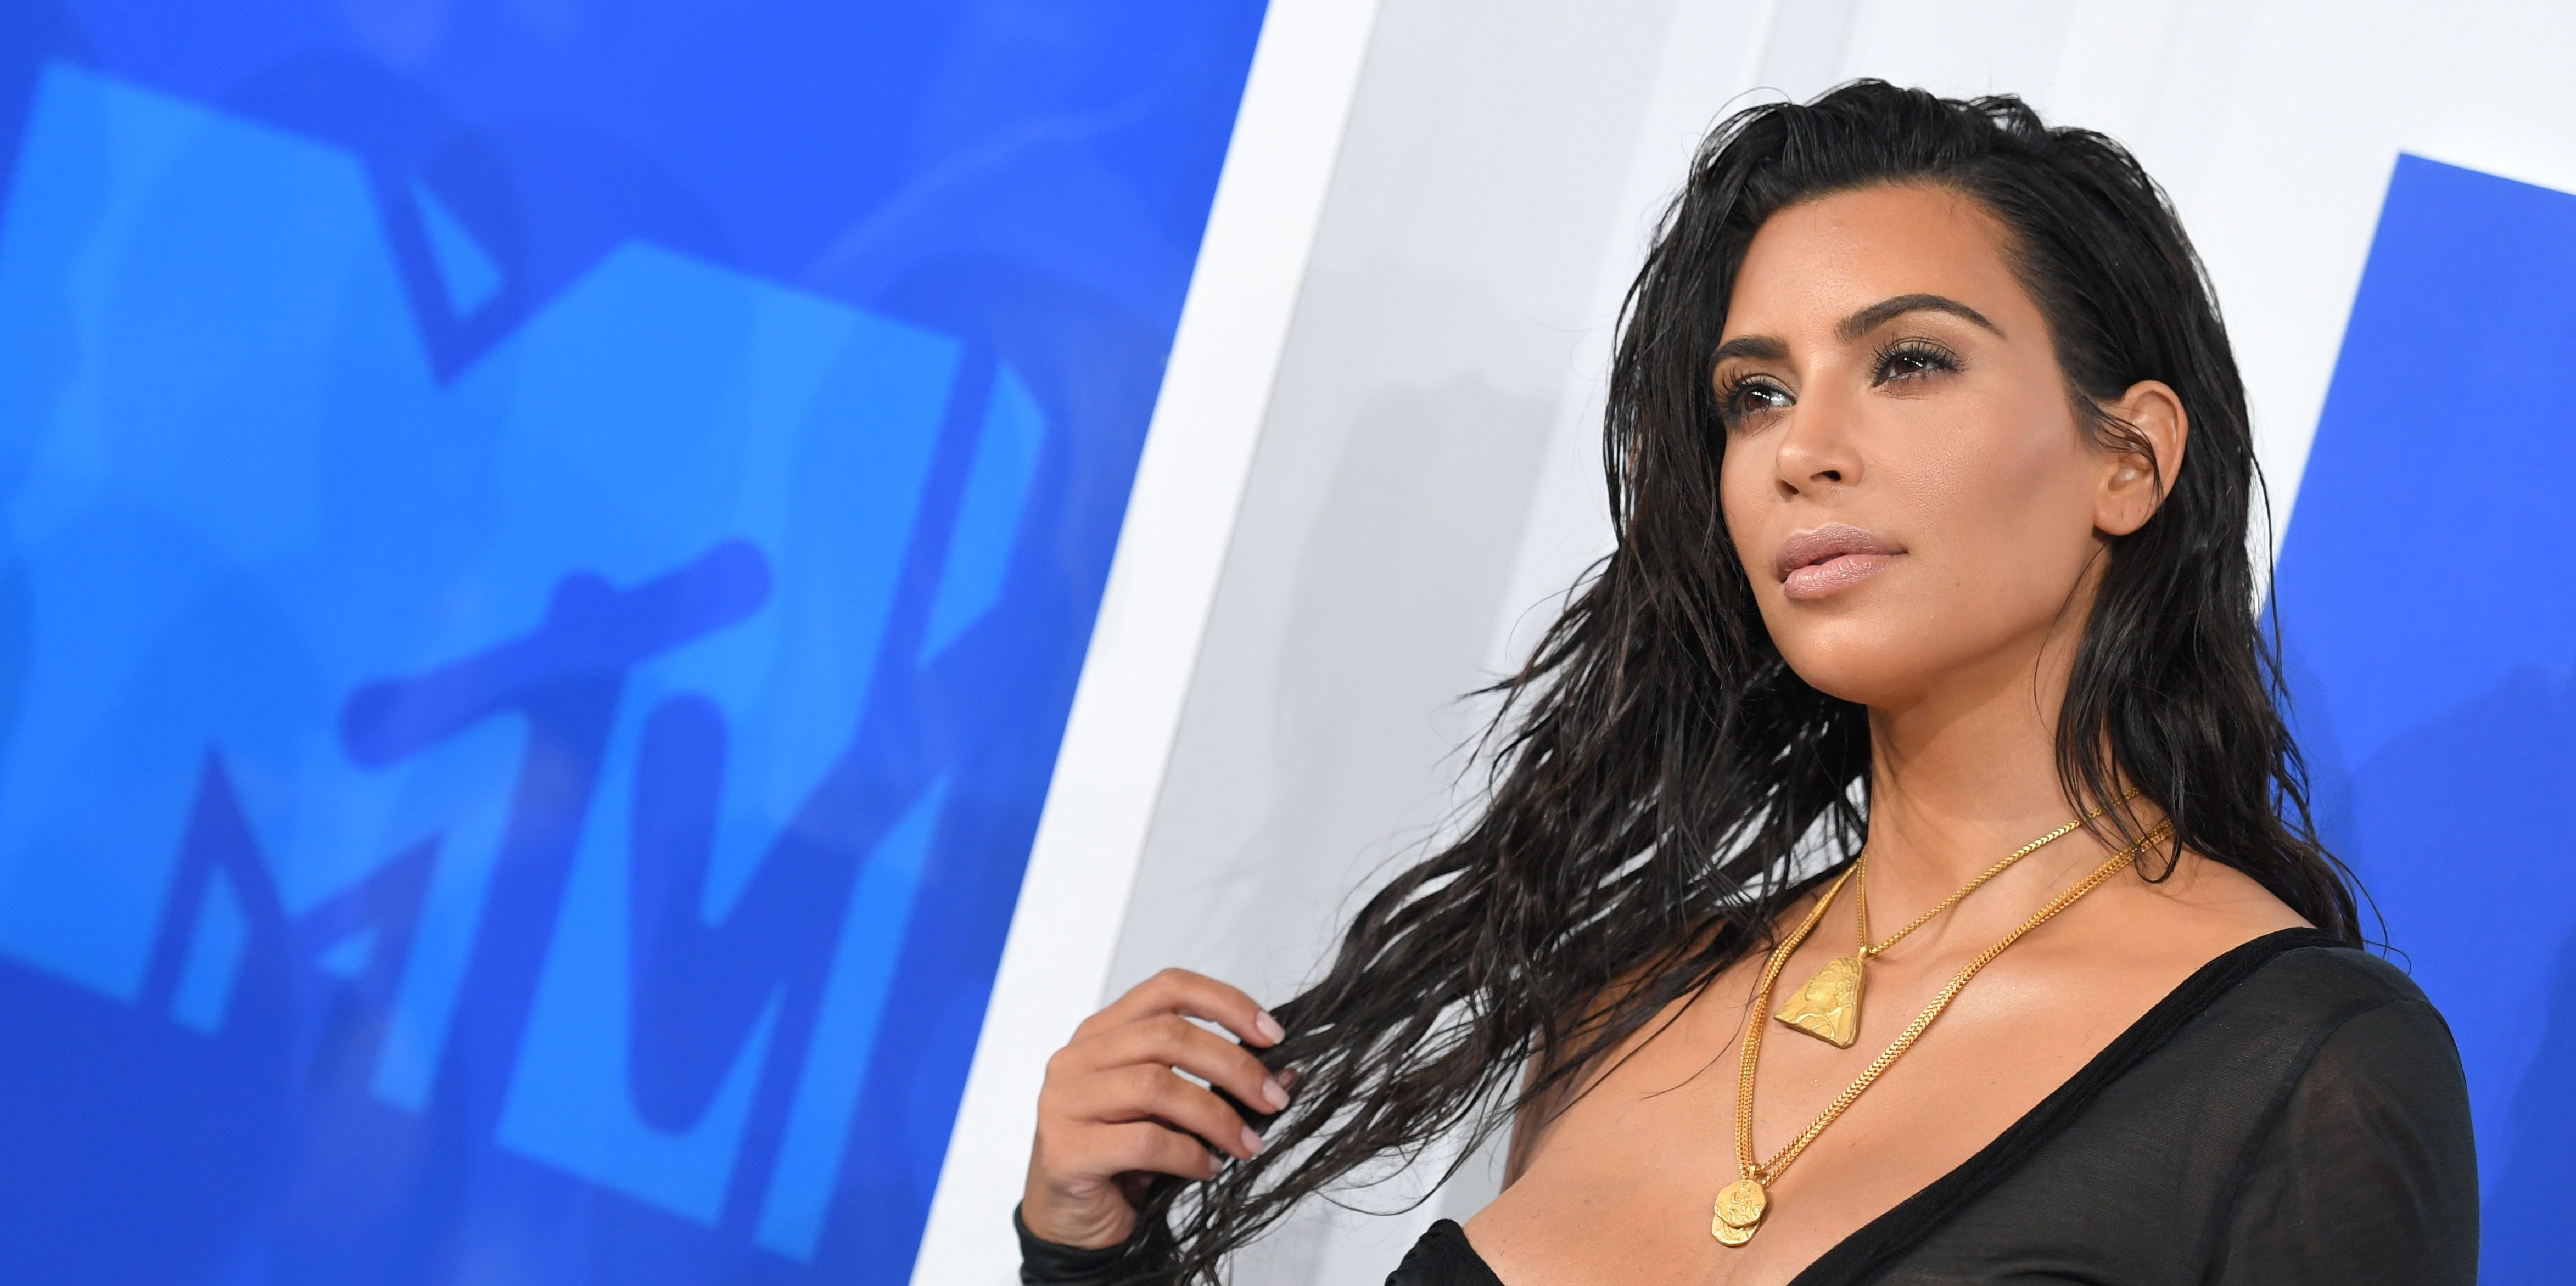 I Tried Kim Kardashian's Crazy-Strict Diet and It Made Me a Sad Shell of a Person